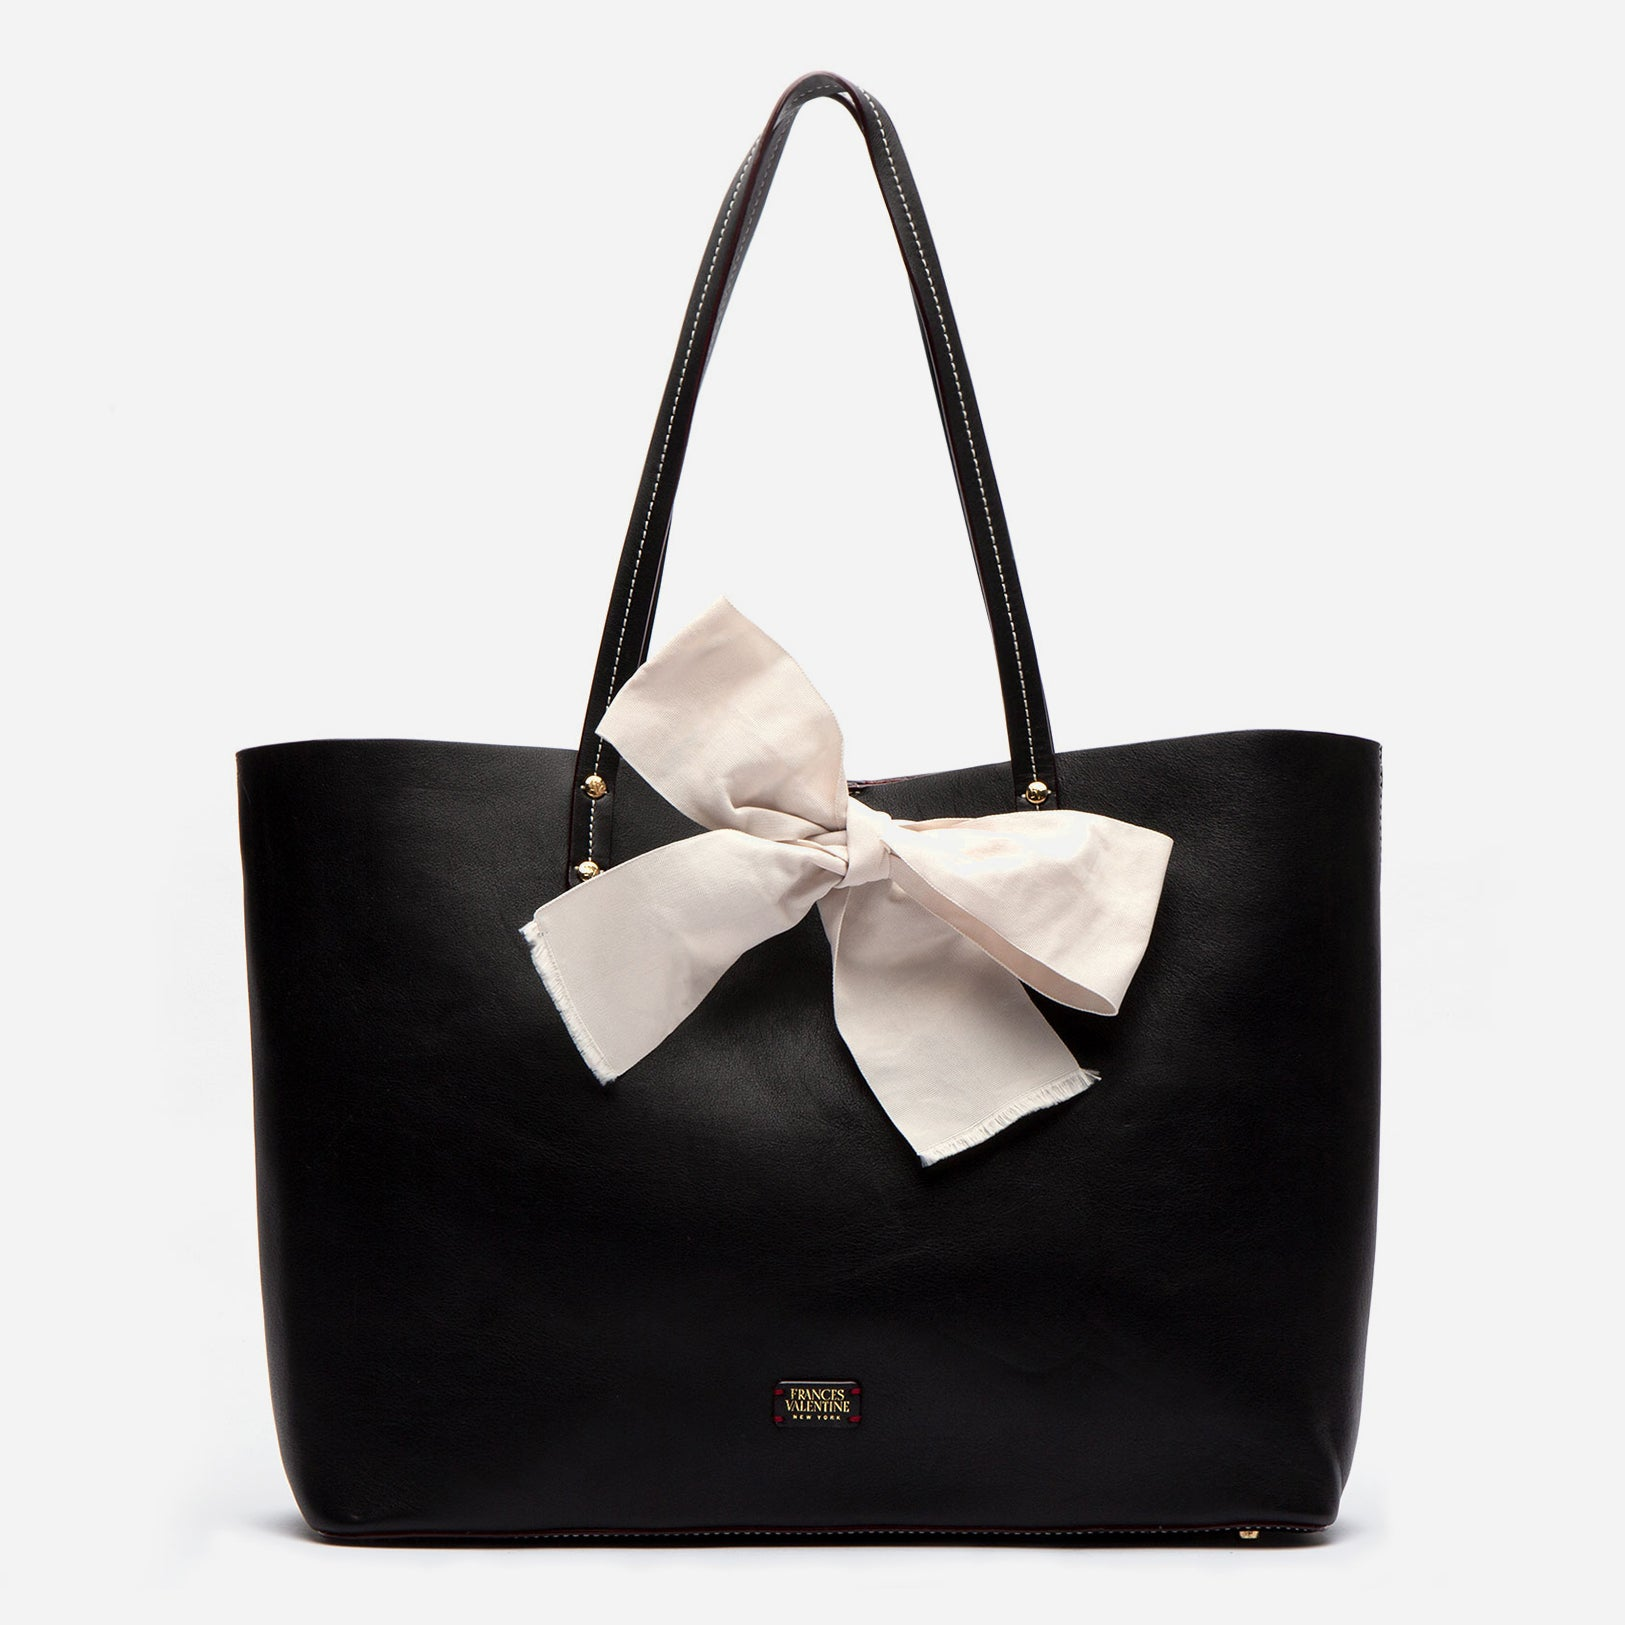 Trixie Bow Tote Black Oyster